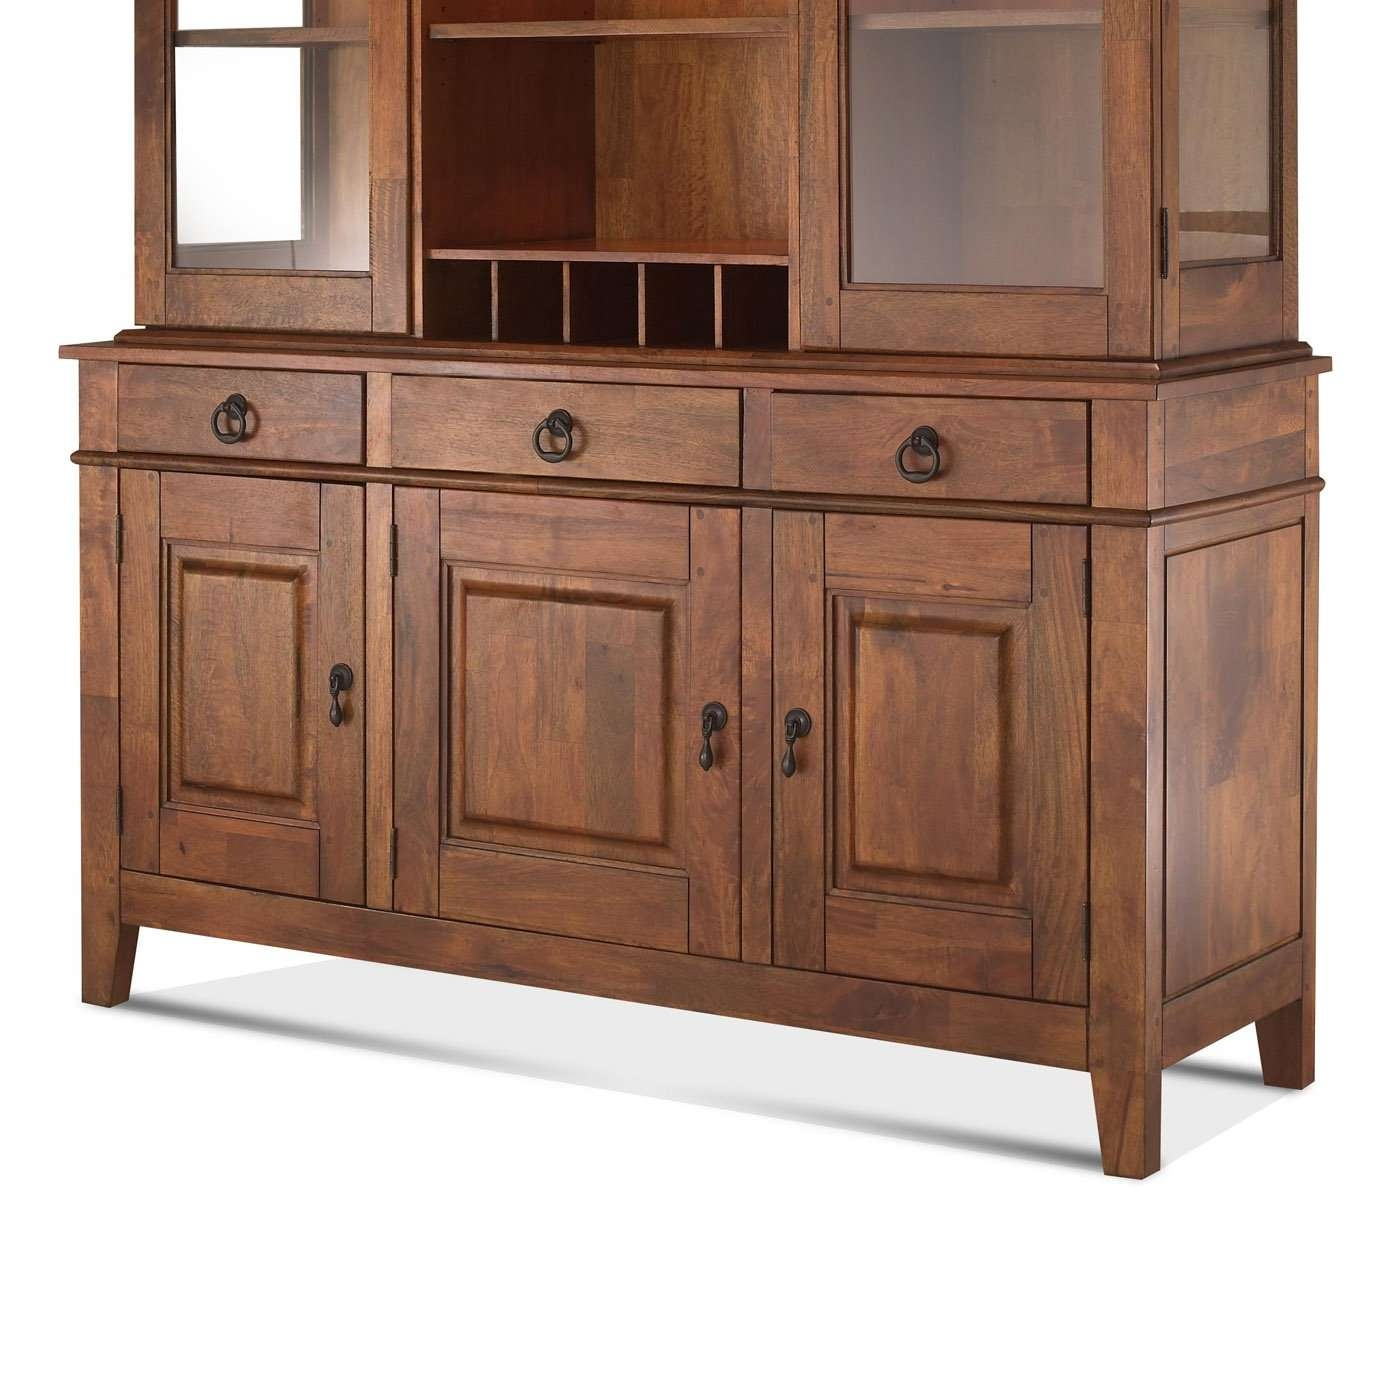 Solid Oak Sideboard Is Your First Choice Living Room Furniture – Hgnv Inside Sideboards Furniture (View 20 of 20)